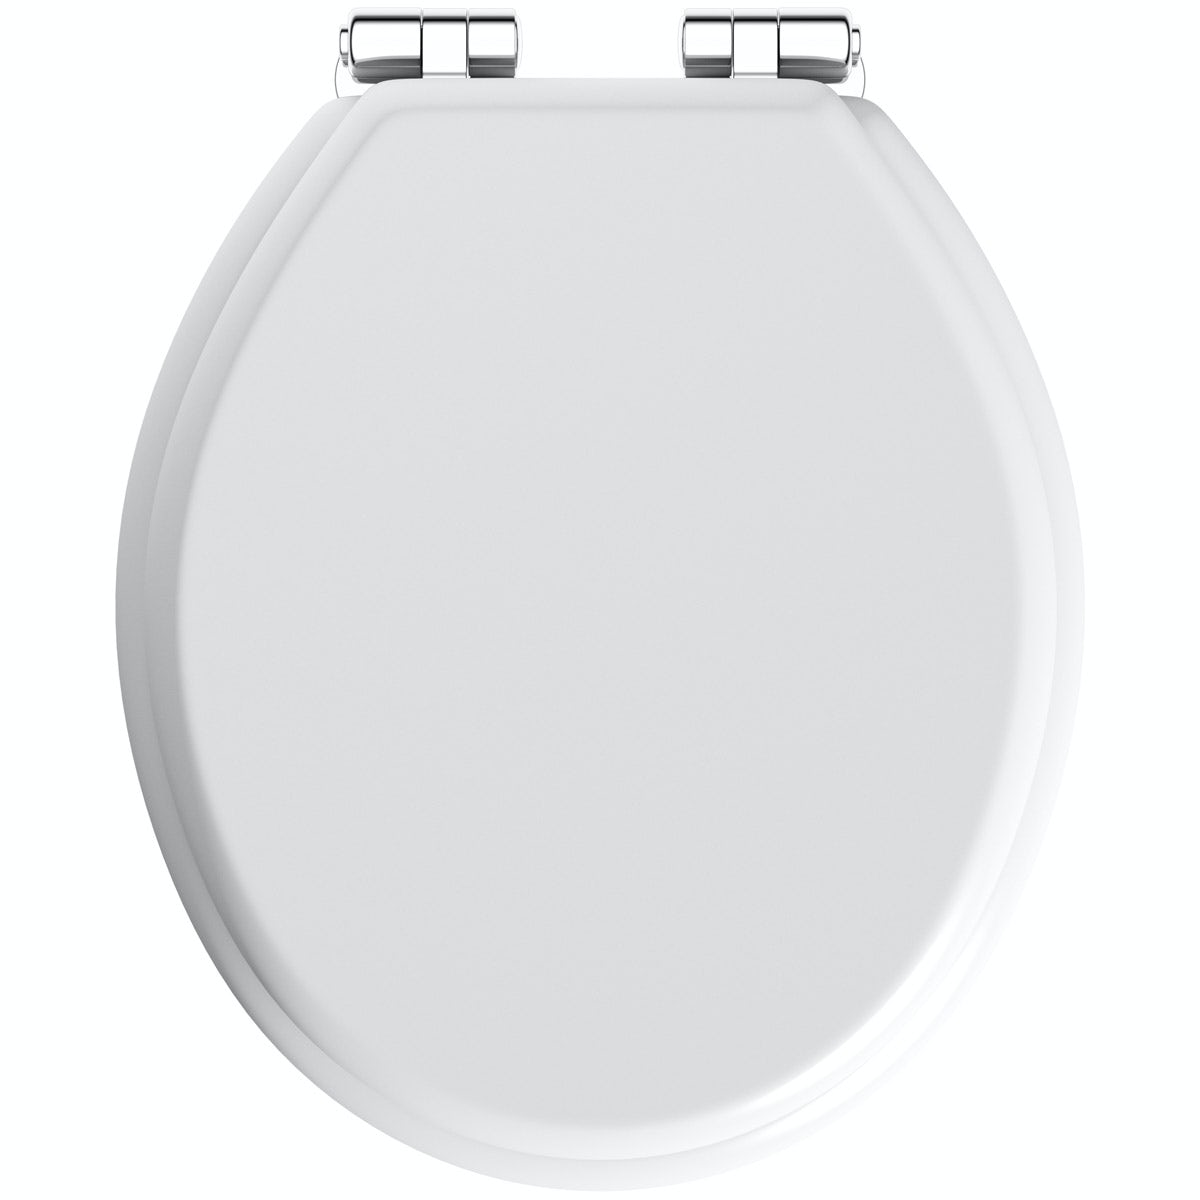 The Bath Co. traditional white engineered wood toilet seat with top fixing soft close hinge